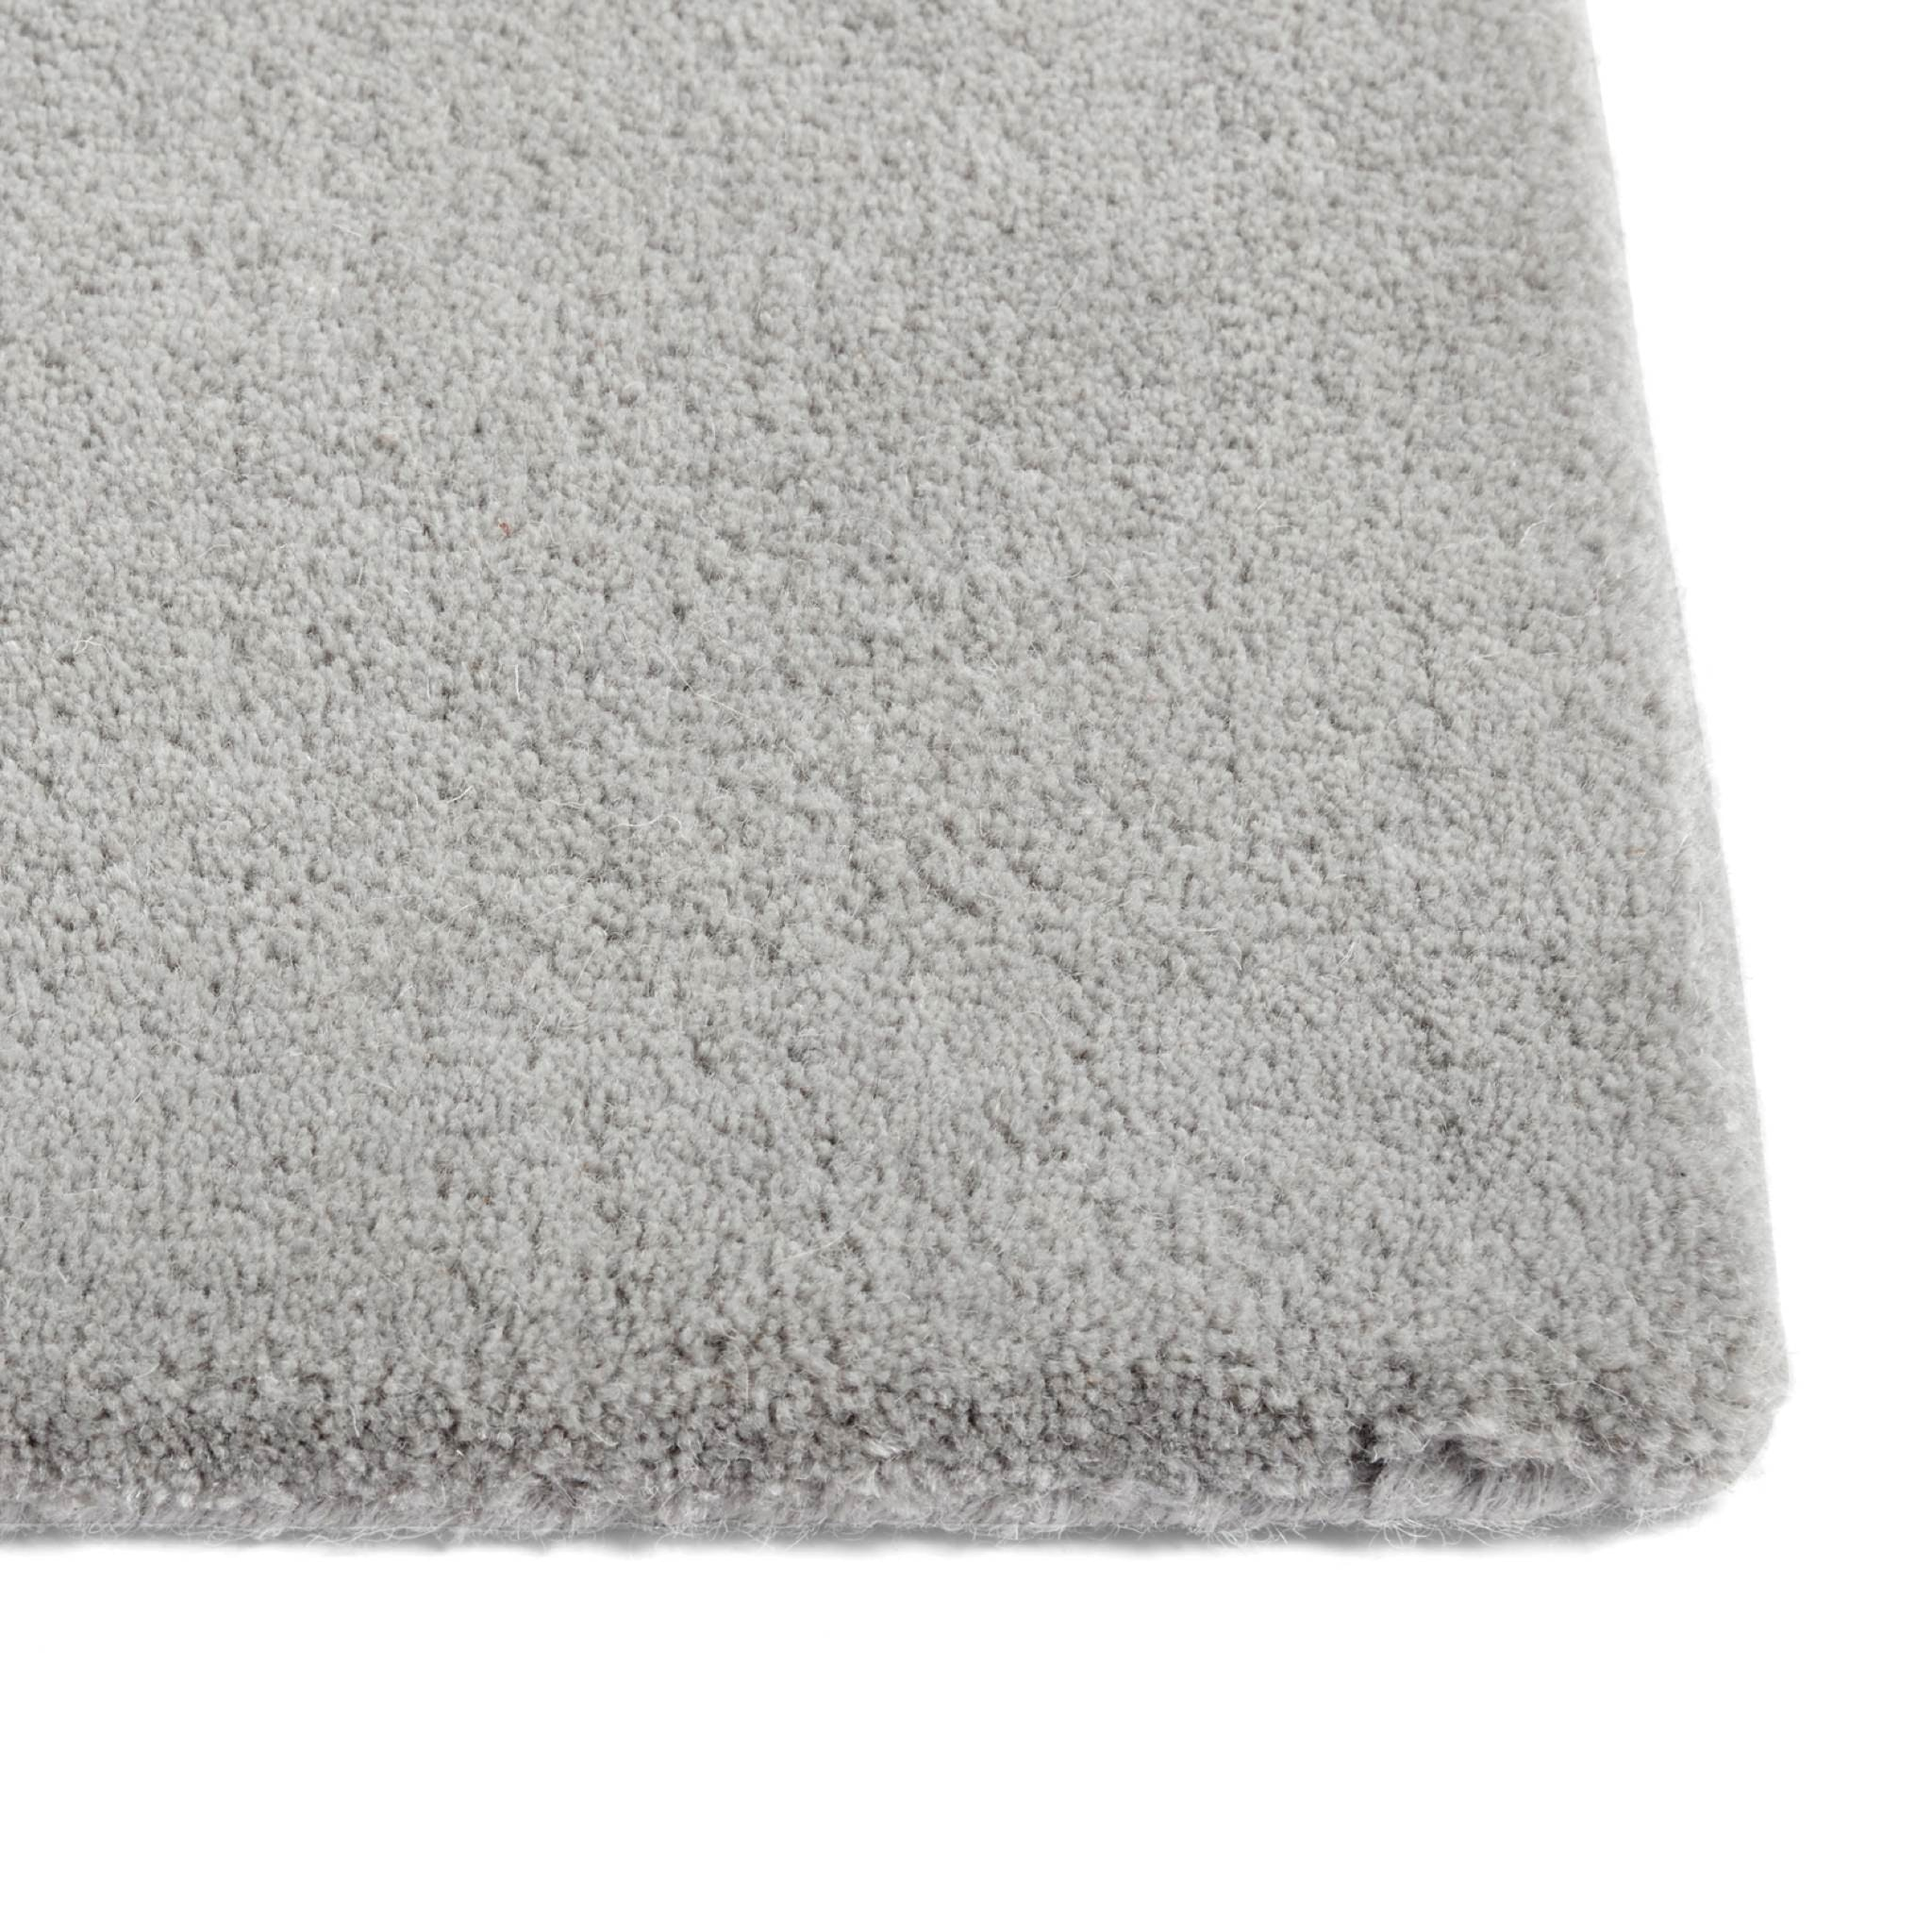 Raw Rug No2 by Hay - clearance